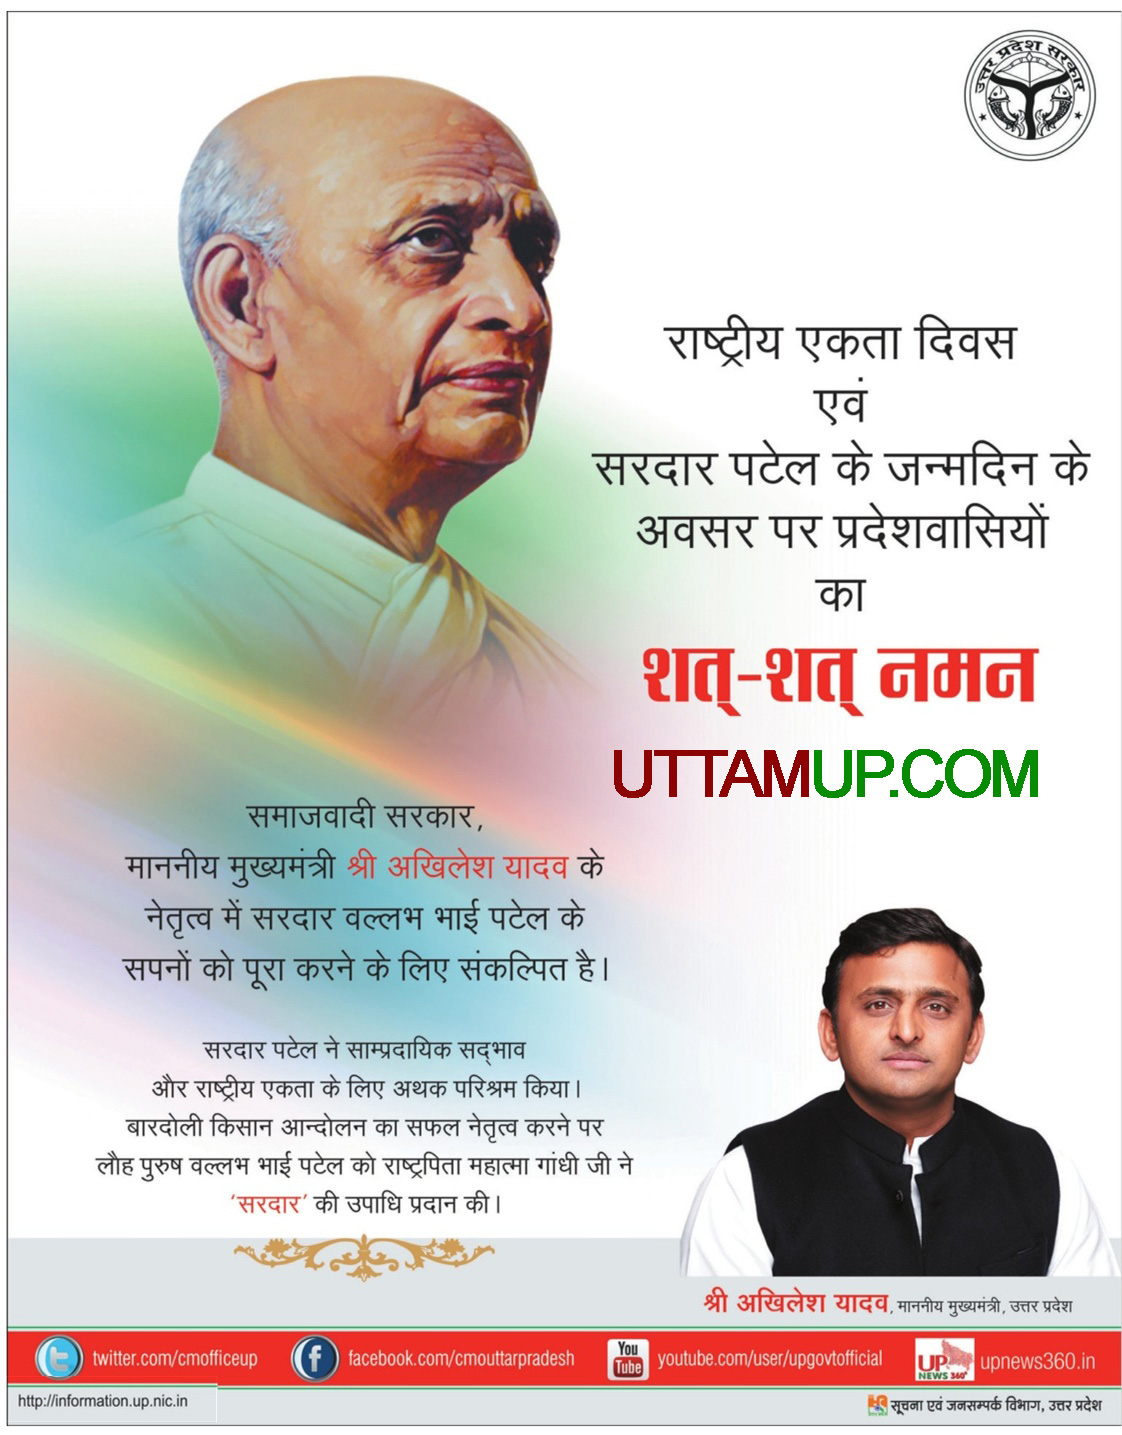 Chief Minister Akhilesh Yadav pays tributes to Sardar Vallabhbhai Patel on his birth anniversary